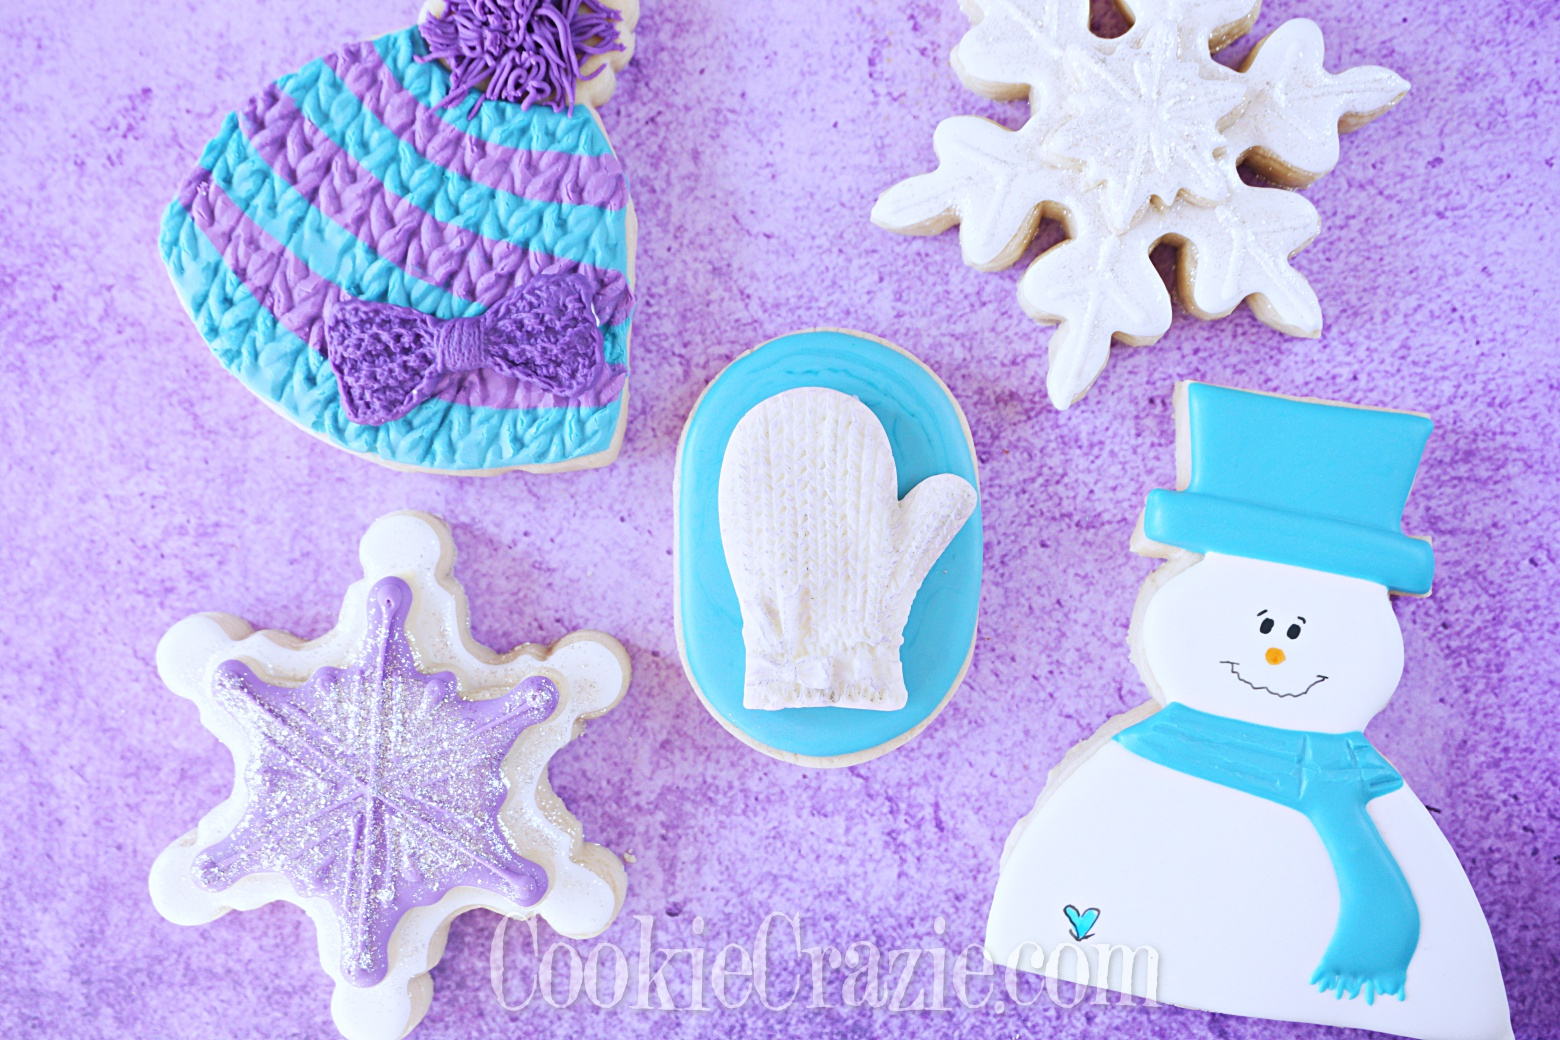 Winter Mitten Decorated Sugar Cookie YouTube video  HERE